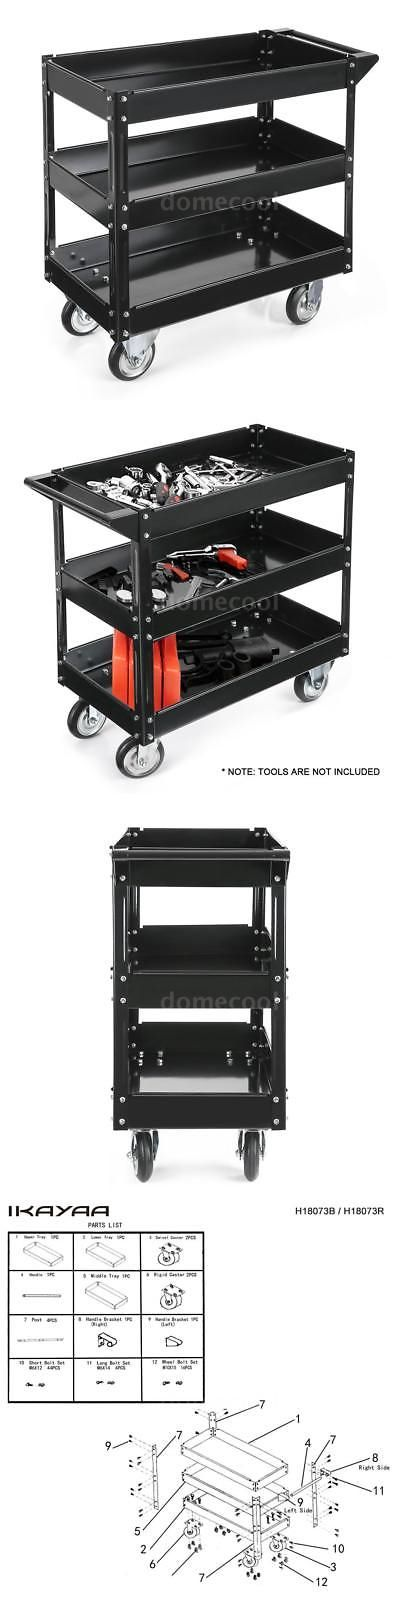 Garden Kneelers Pads and Seats 75669: Ikayaa Metal Rolling Tool Cart Storage Box Wheels Storage Trays 3 Shelves T3a7 -> BUY IT NOW ONLY: $58.95 on eBay!